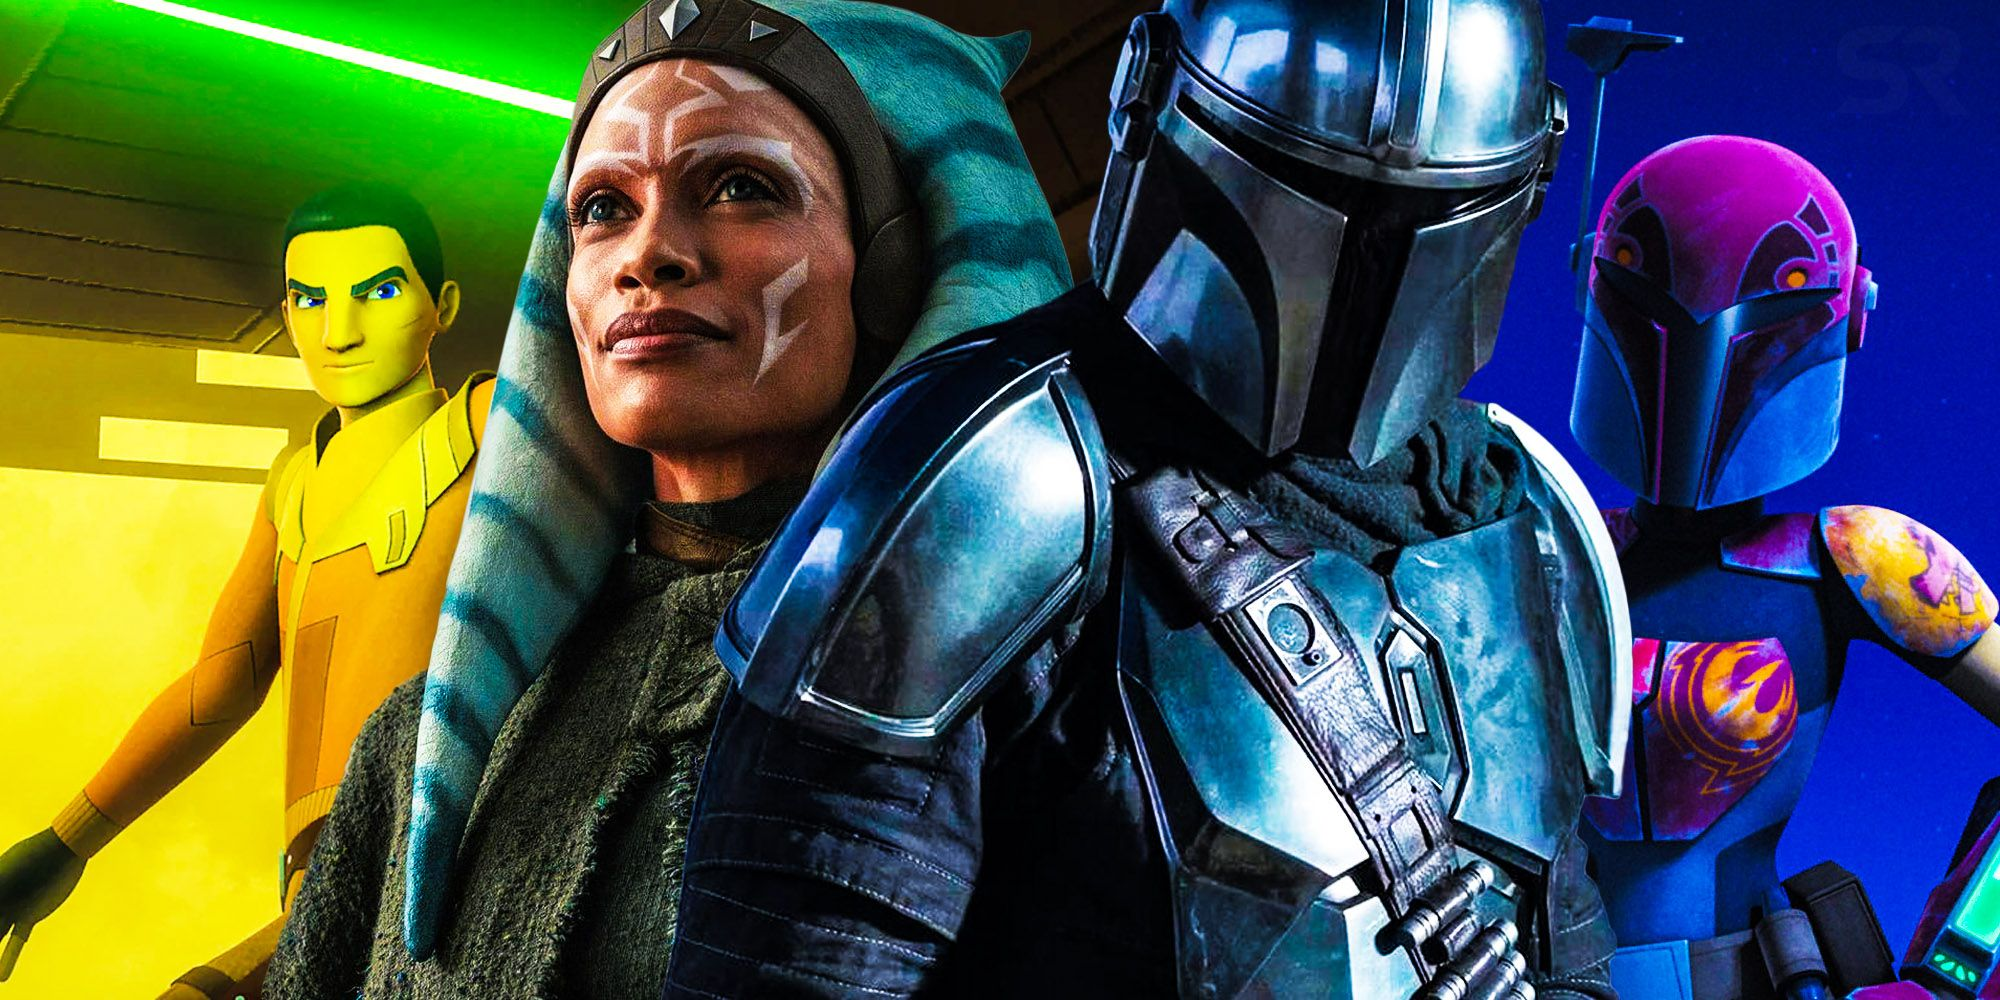 How Each Star Wars Rebels Character Can Make Their Live-Action Debut